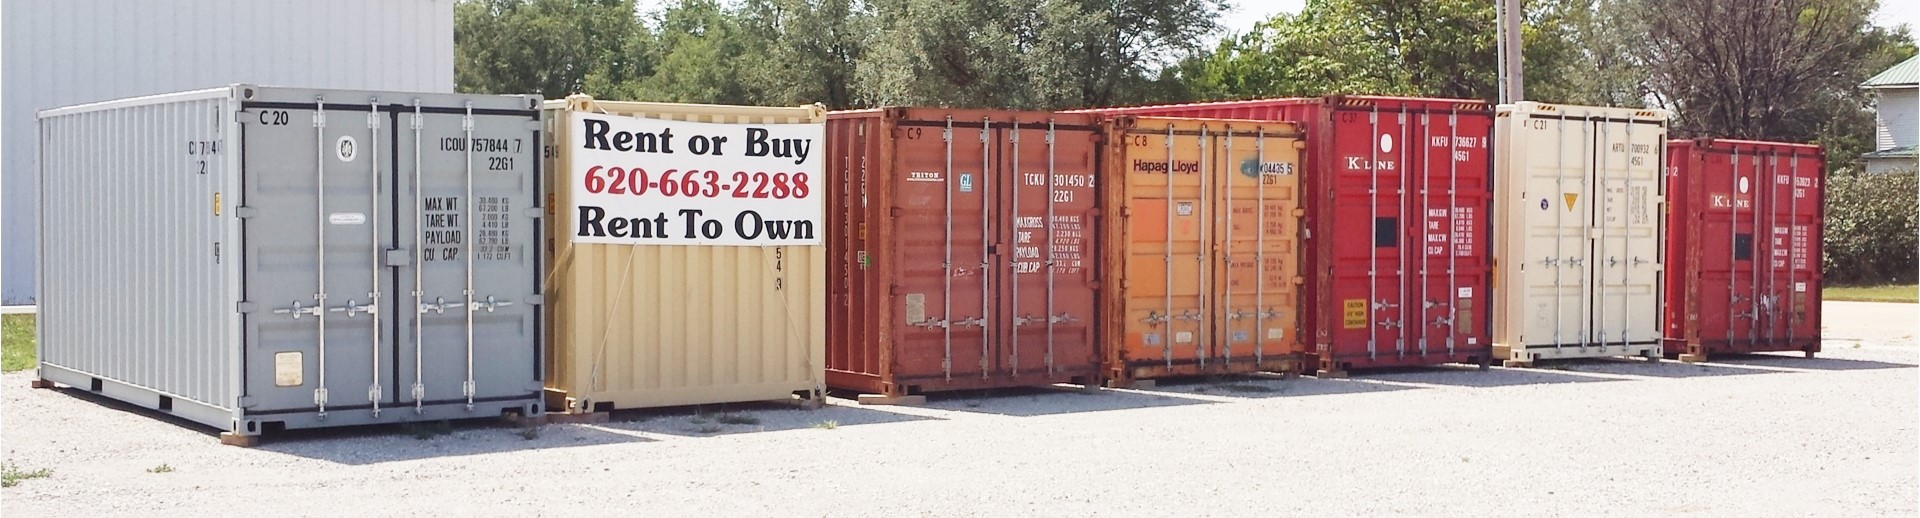 Sturdi Bilt Portable Shipping Storage Containers For Sale Rent